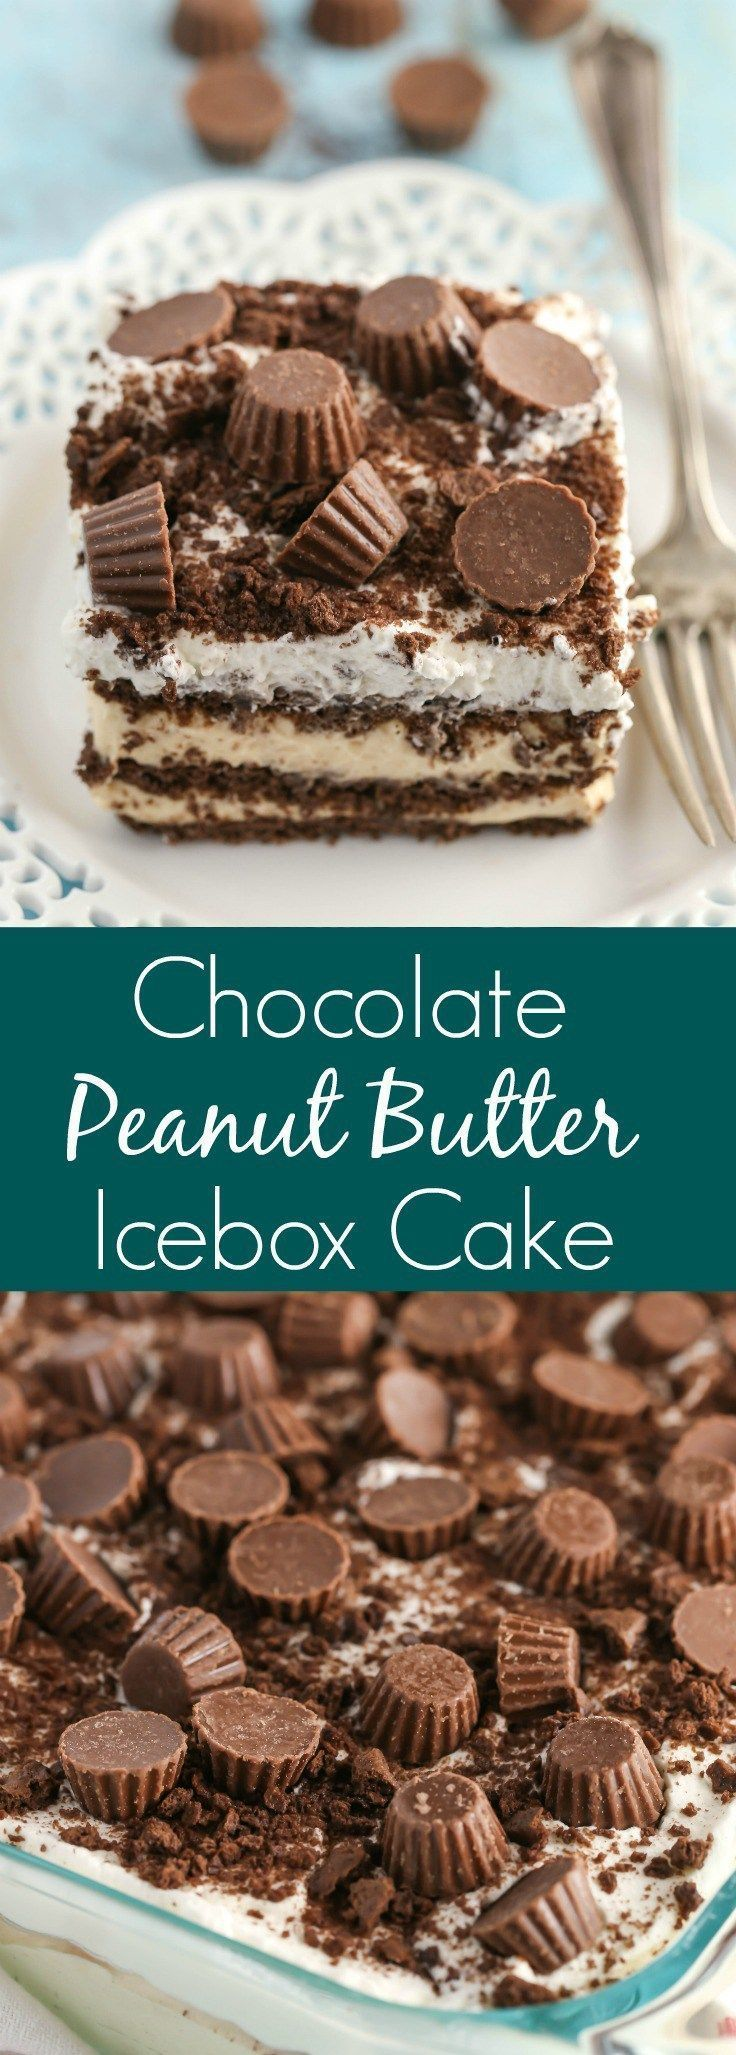 This Chocolate Peanut Butter Icebox Cake is an easy and delicious no-bake dessert. Layers of chocolate graham crackers and a creamy peanut butter filling are topped off with delicious whipped cream and mini peanut butter cups! You just can't go wrong with chocolate and peanut butter.